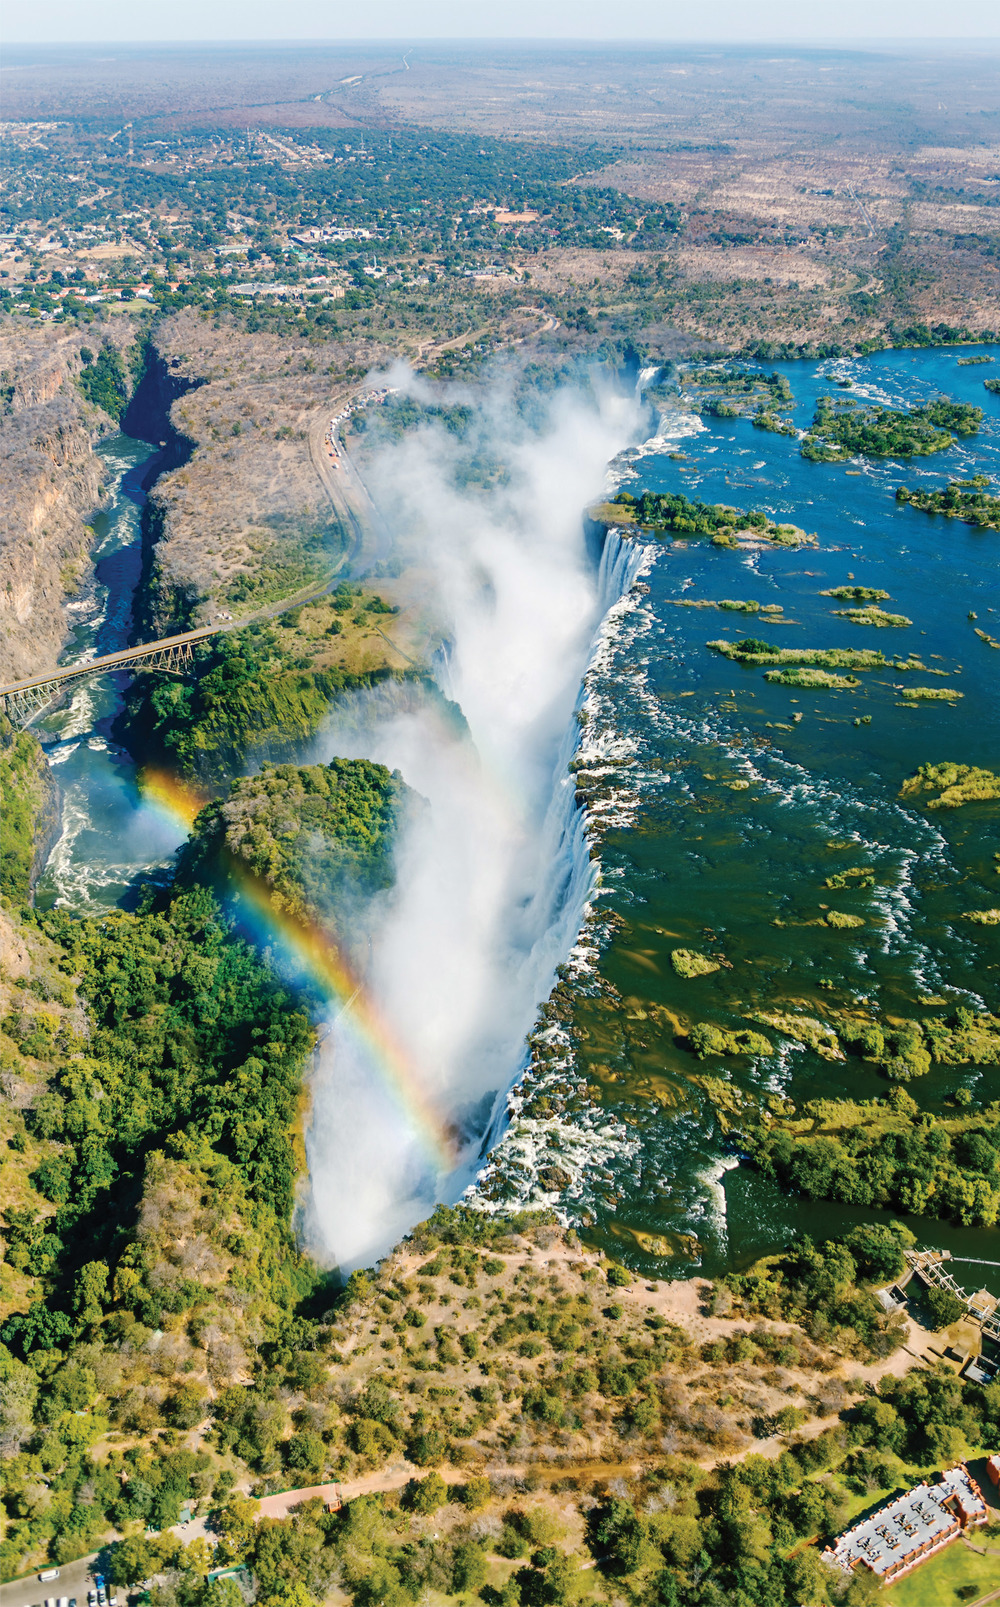 Left: Helicopter view of Victoria Falls, the largest curtain of water in the world.  Vadim Petrakov / Shutterstock.com